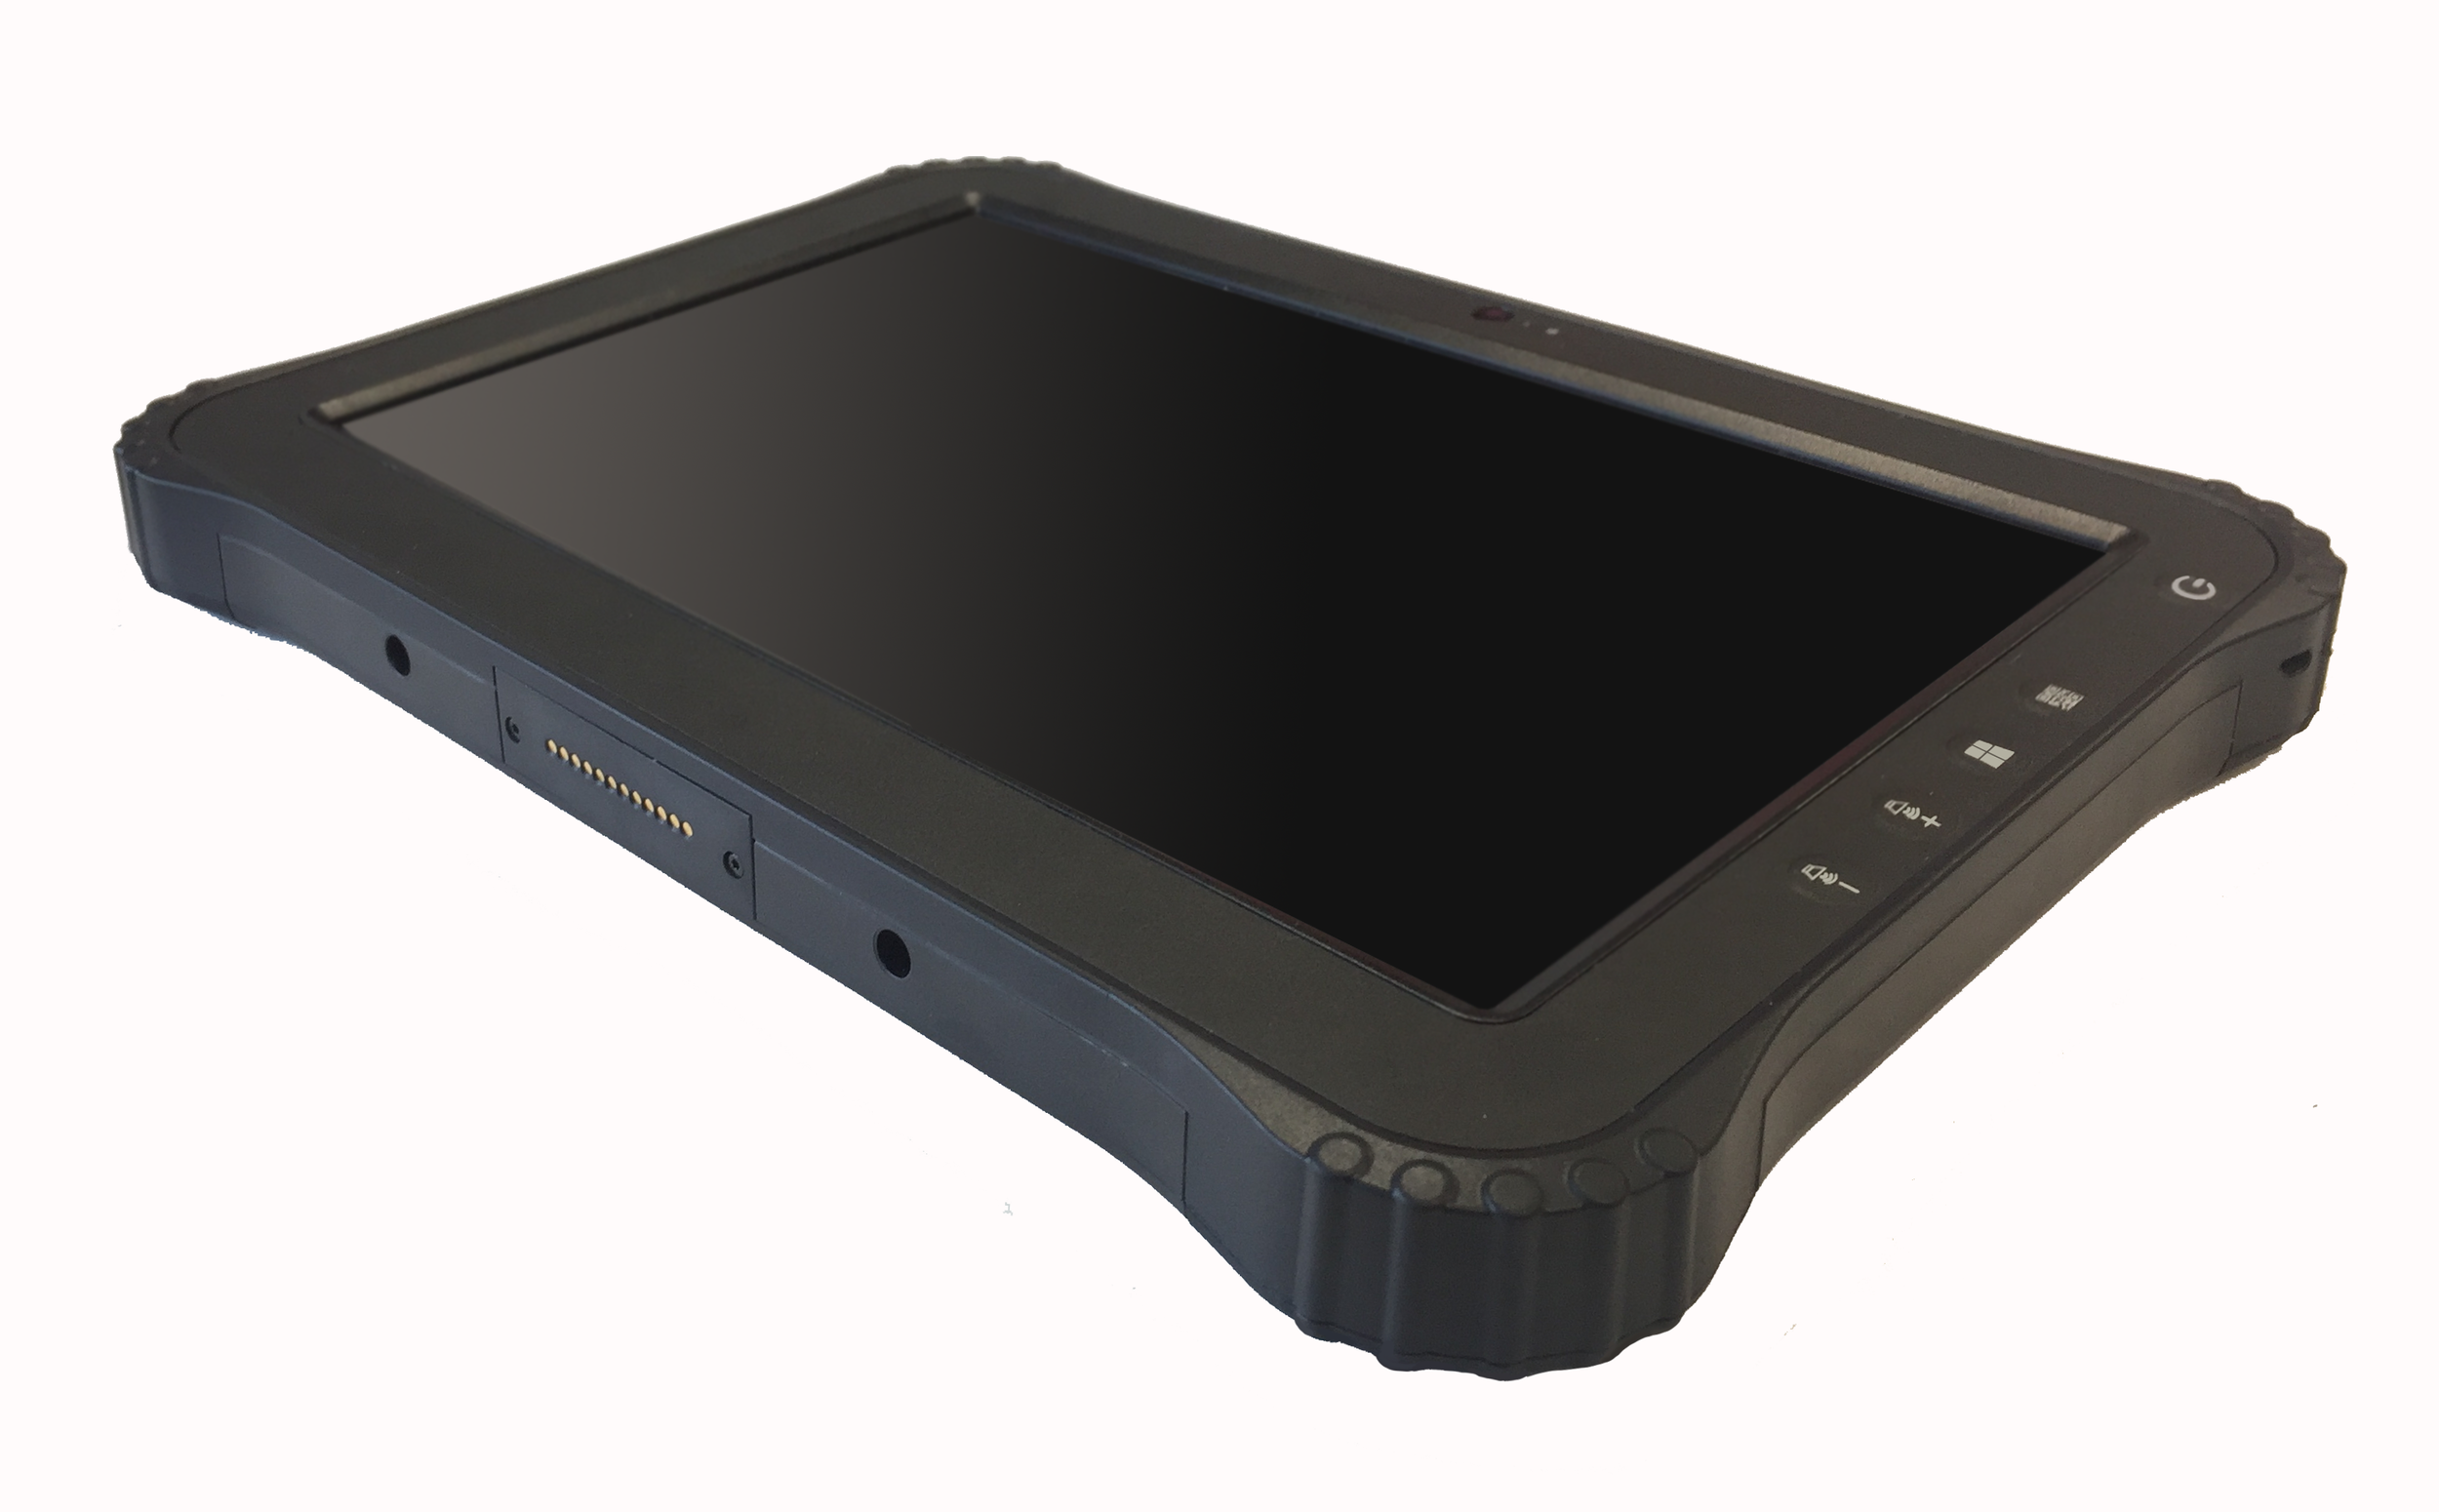 """8"""" Rugged Tablet - Tough is beautiful with this 8.1"""" tablet from CYOD. Waterproof with optional 3G/4G and fingerprint recognition, it's light enough to take almost anywhere whilst still packing a punch with functionality and desirable features."""